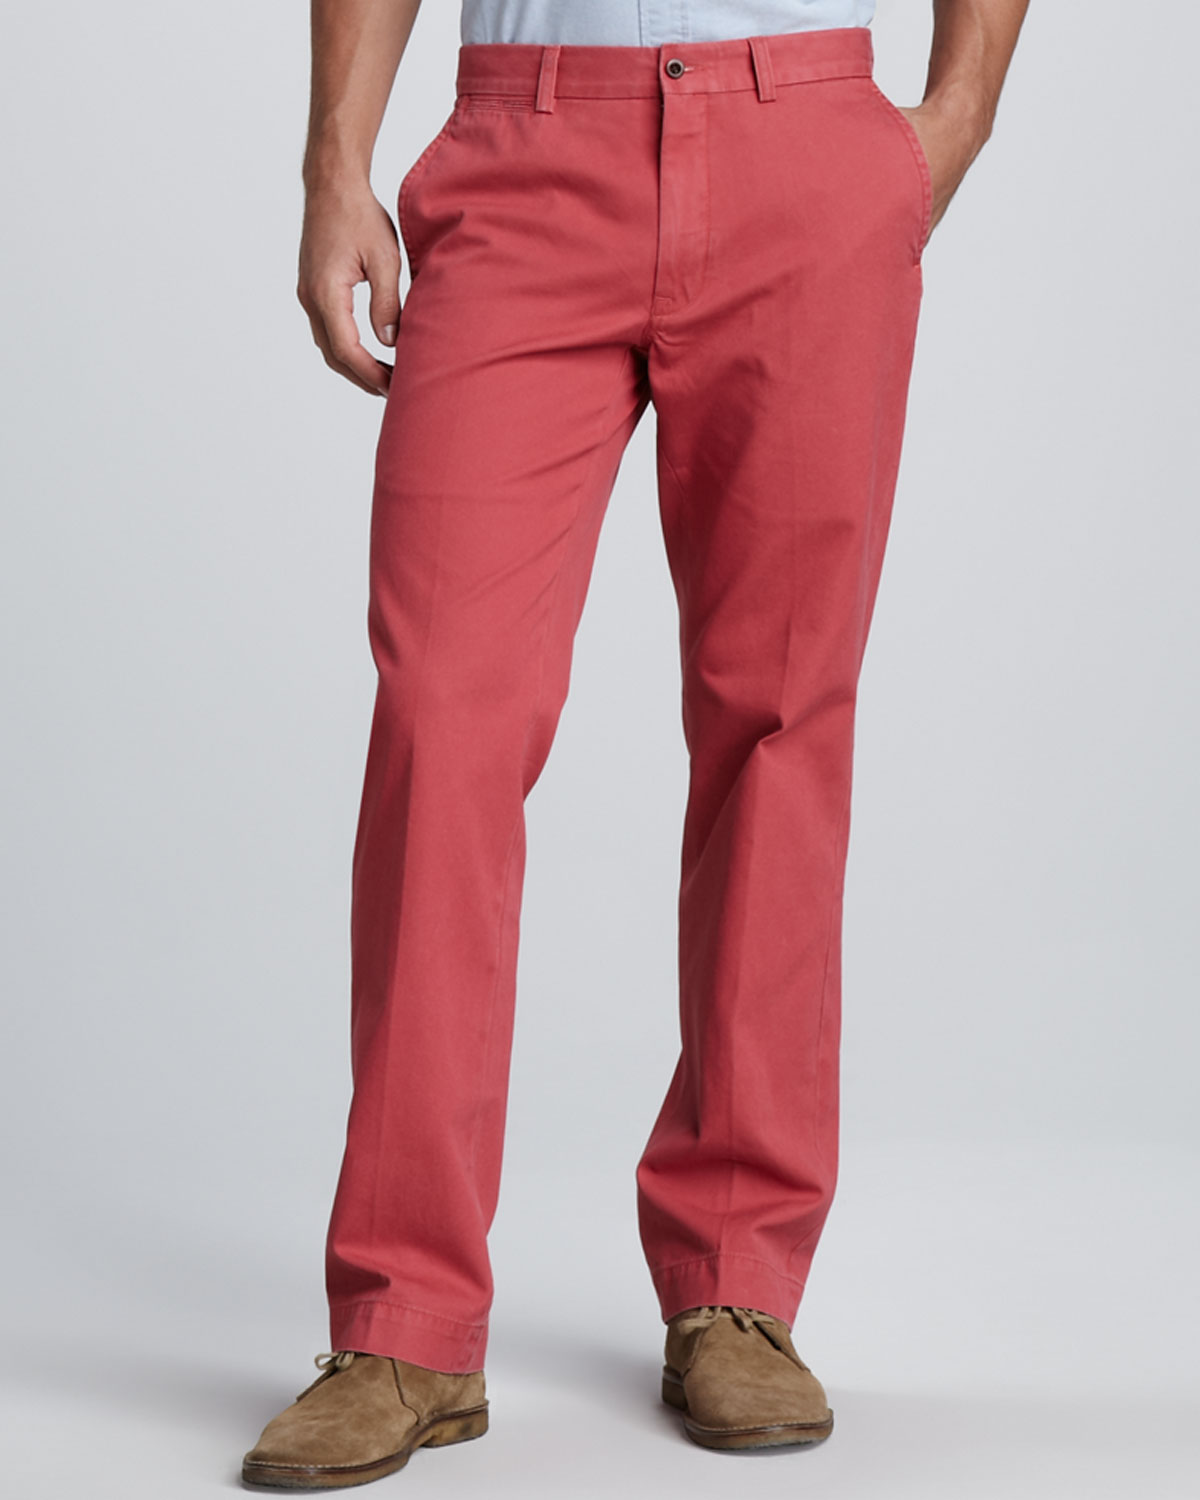 Polo Ralph Lauren Suffield Twill Pants In Red For Men Lyst